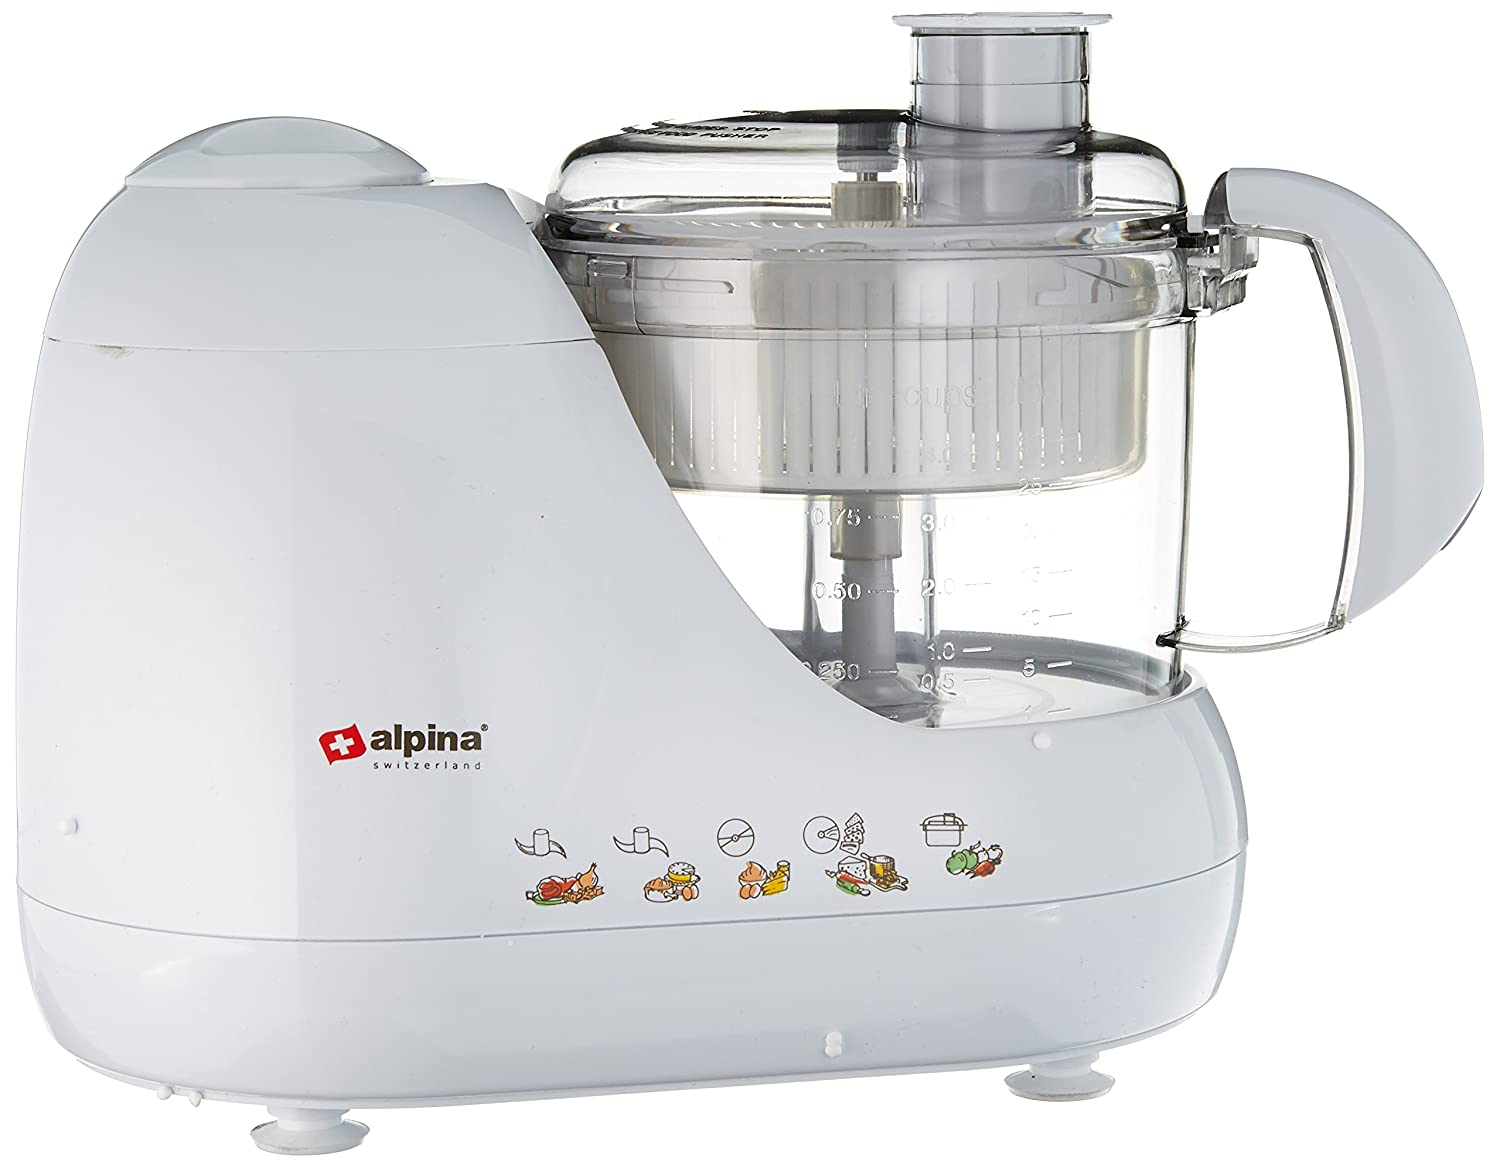 Alpina SF-4010 Kitchen Factory with Food Processor Chopping / Kneading Plus Juice Extractor - 220/240 Volt(Not for USA) by Alpina   B00FEL3IV8